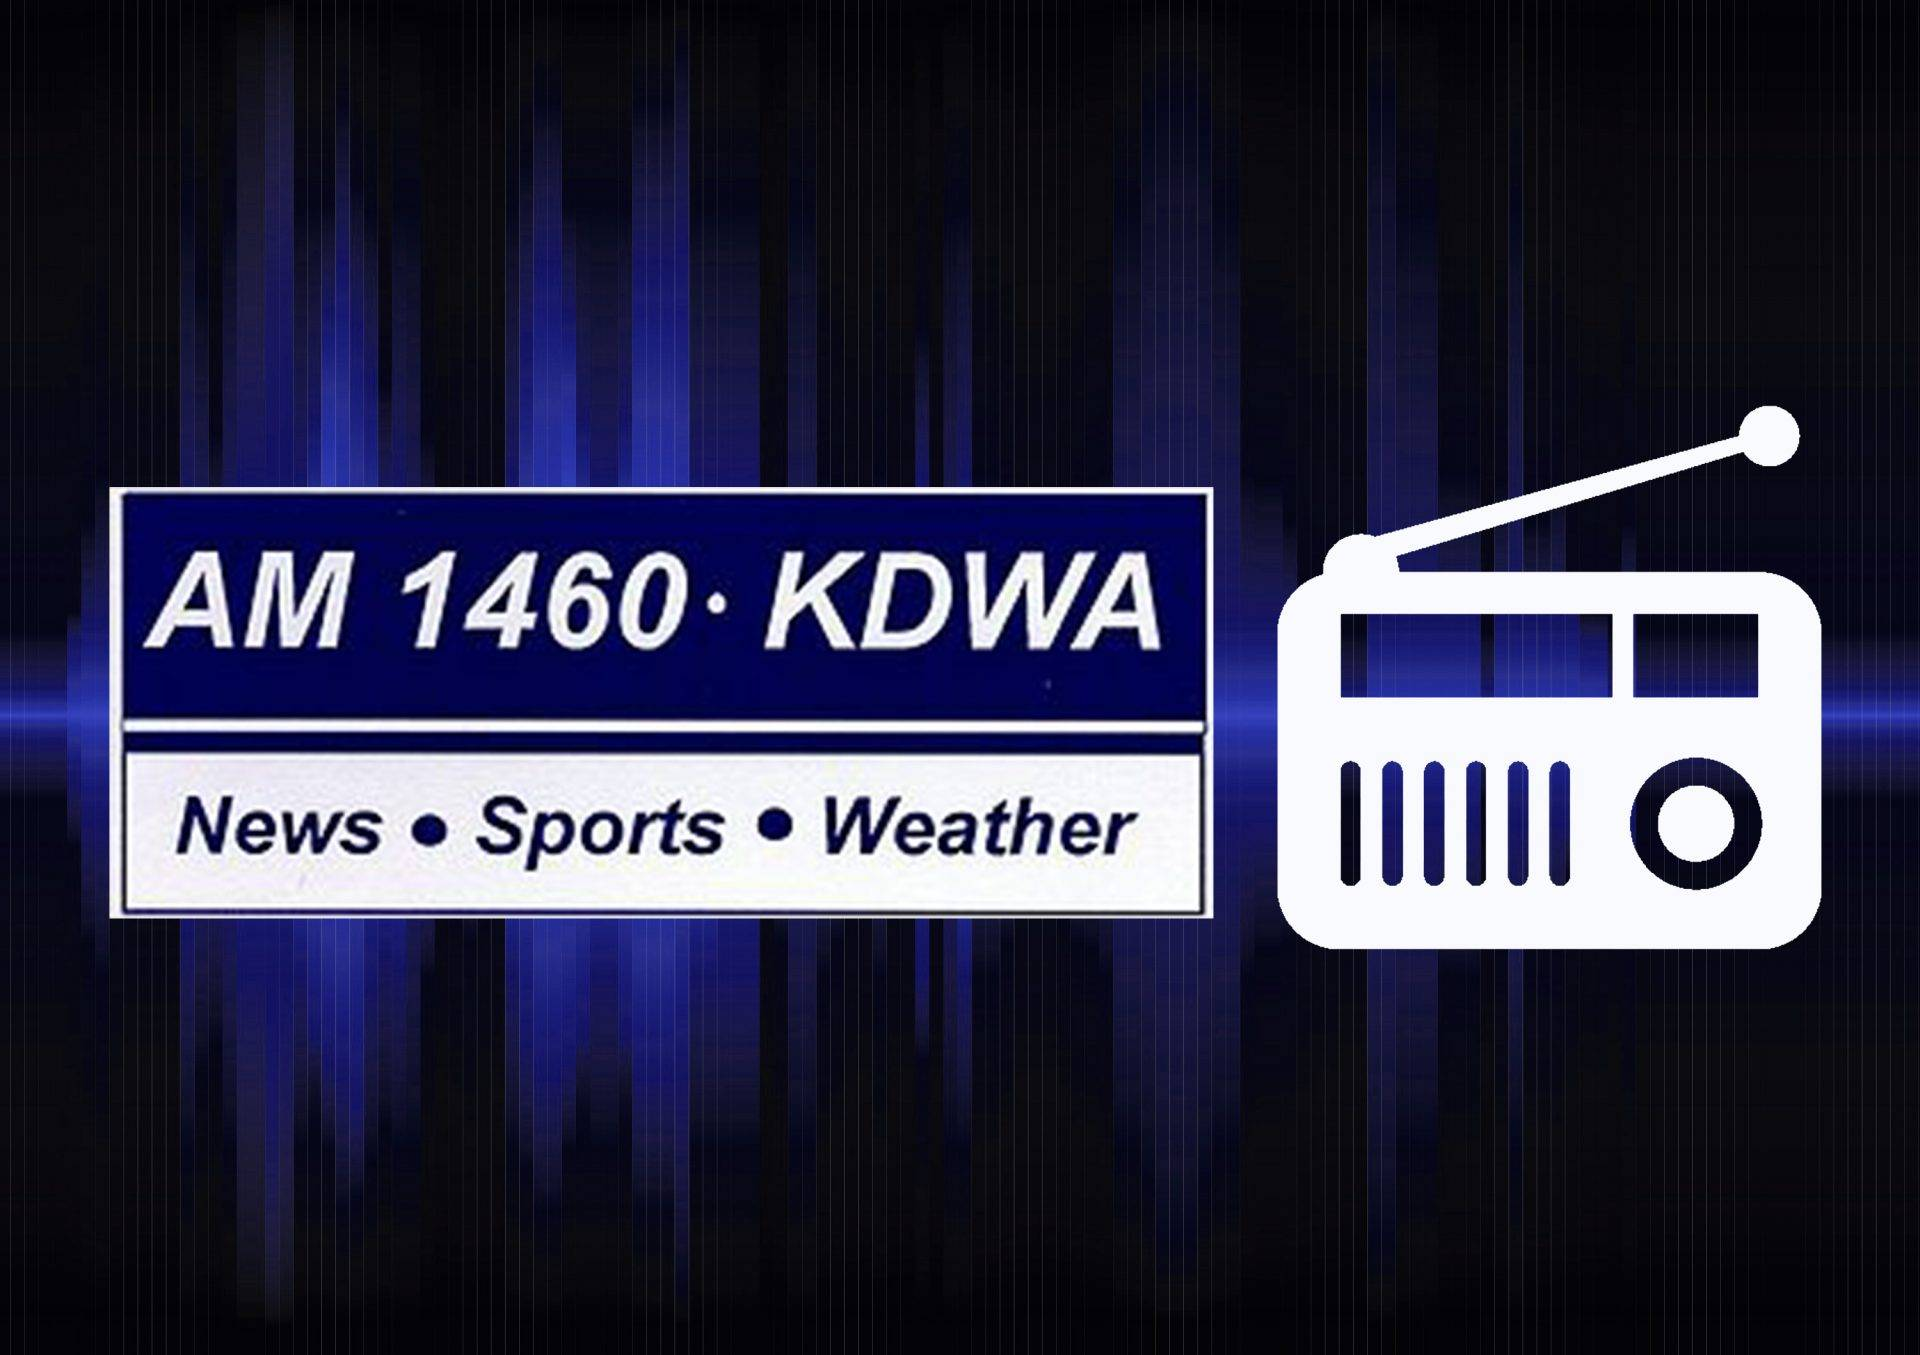 KDWA AM Radio